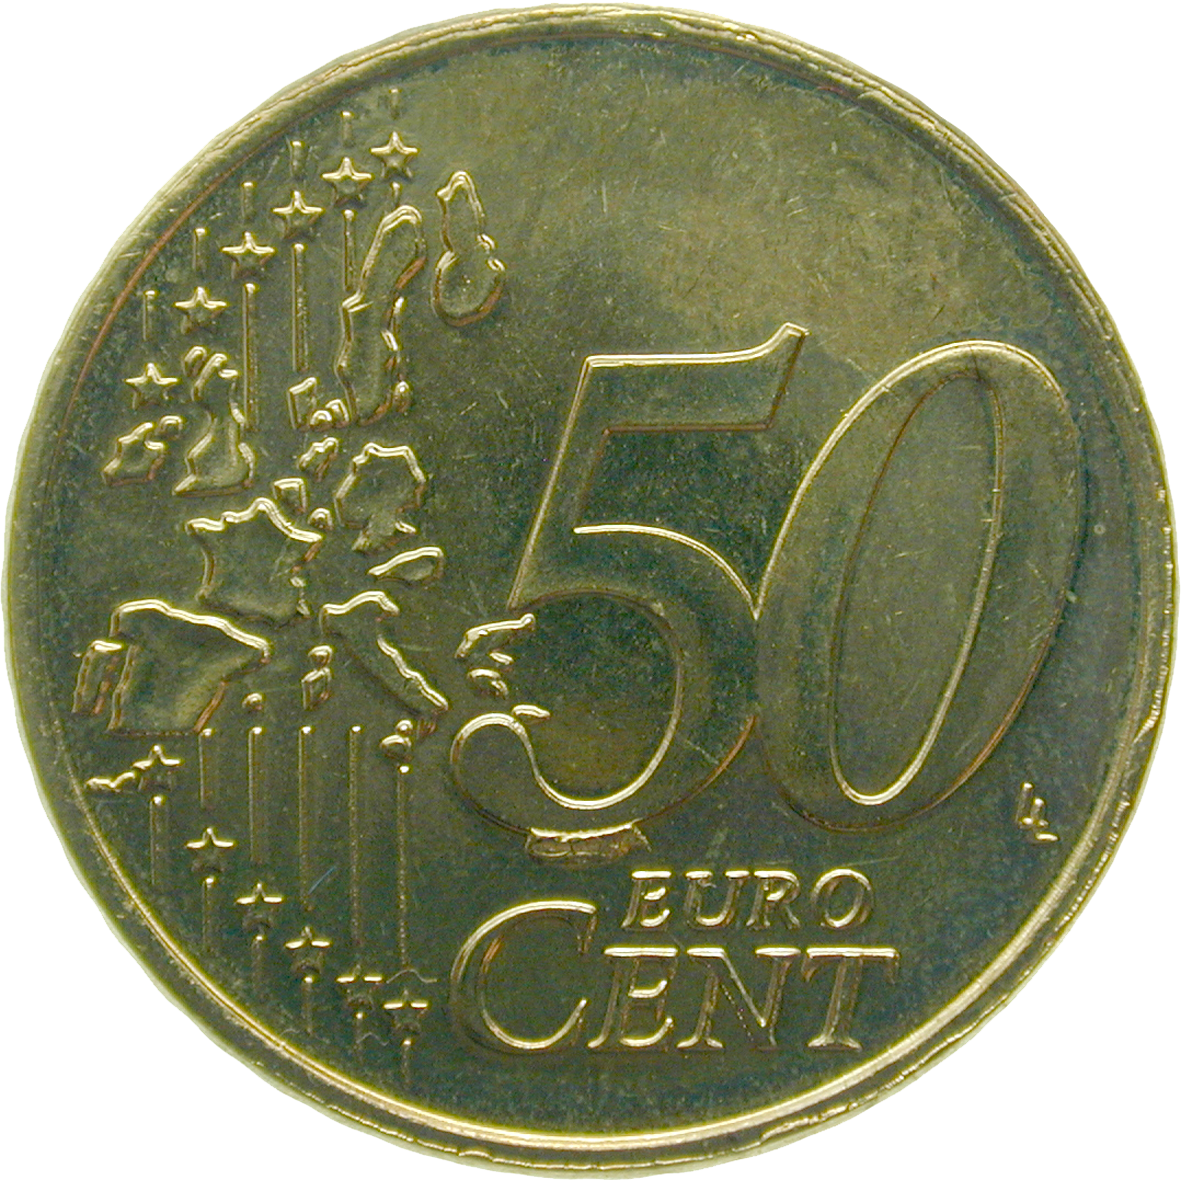 Grand Duchy of Luxembourg, Henri, 50 Euro Cent 2002 (obverse)